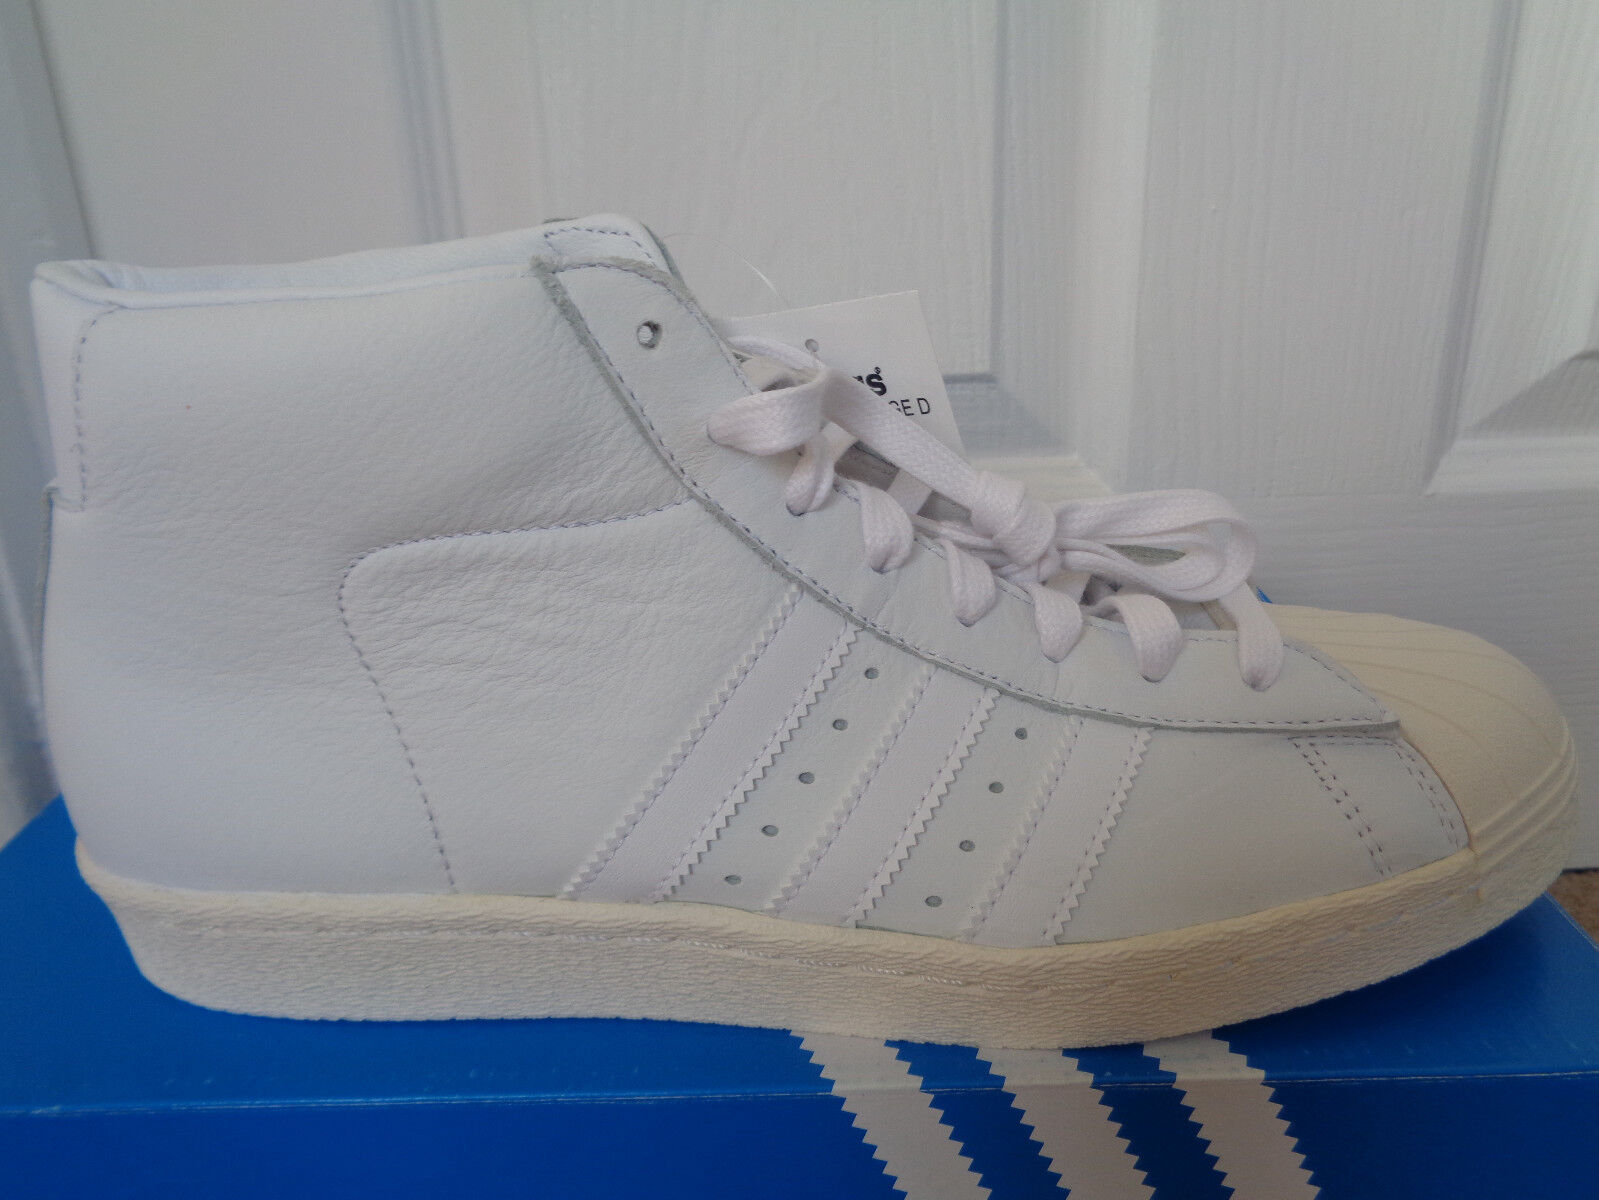 Adidas Pro Model Vintagew DLX trainers S75031 uk 8.5 eu 42.2 3 us 9 NEW IN BOX